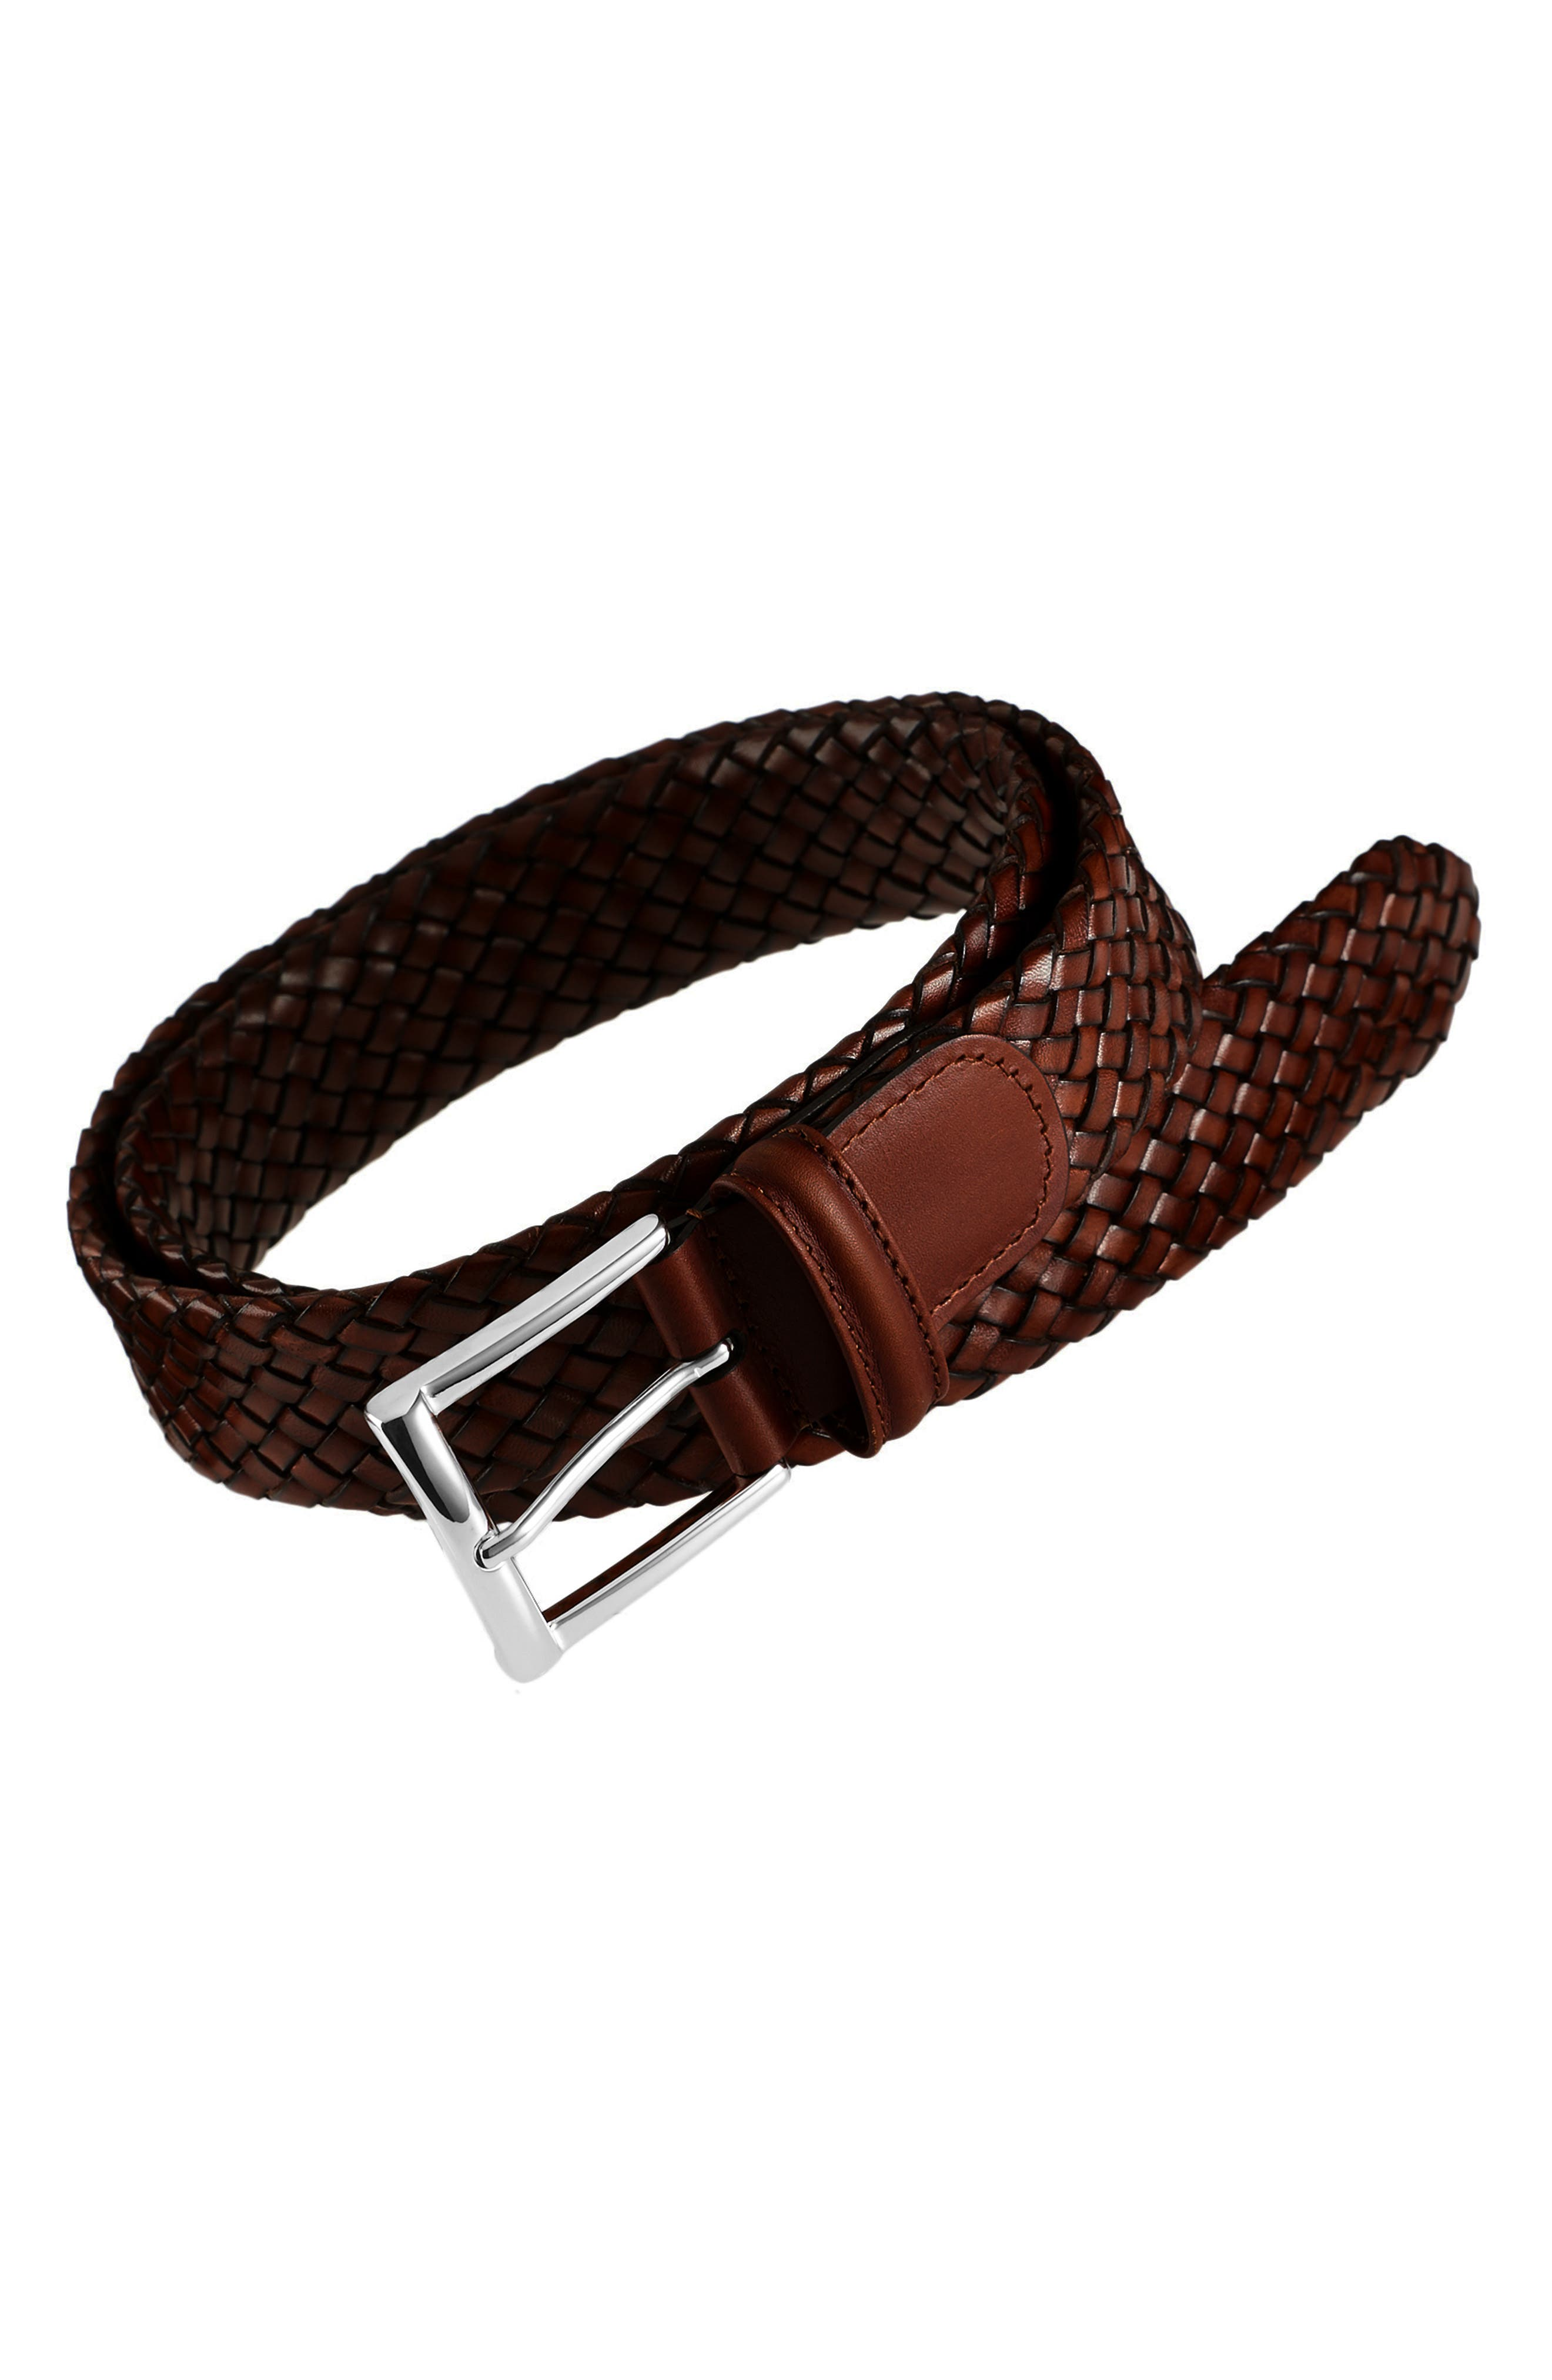 ANDERSONS Woven Leather Belt in Brown